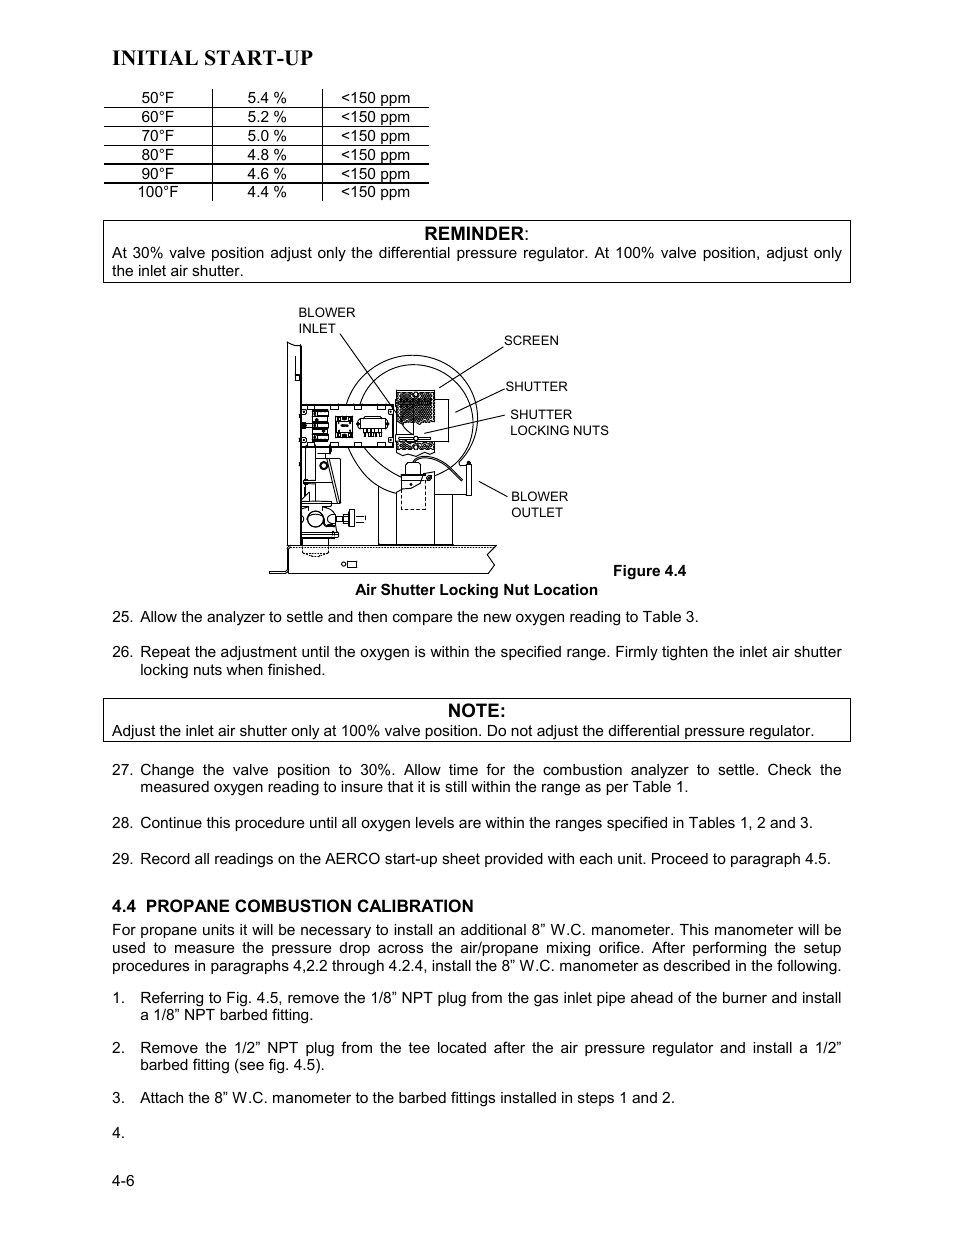 air shutter locking nut location 4 propane combustion calibration rh manualsdir com  manual combustion air pipe dampers